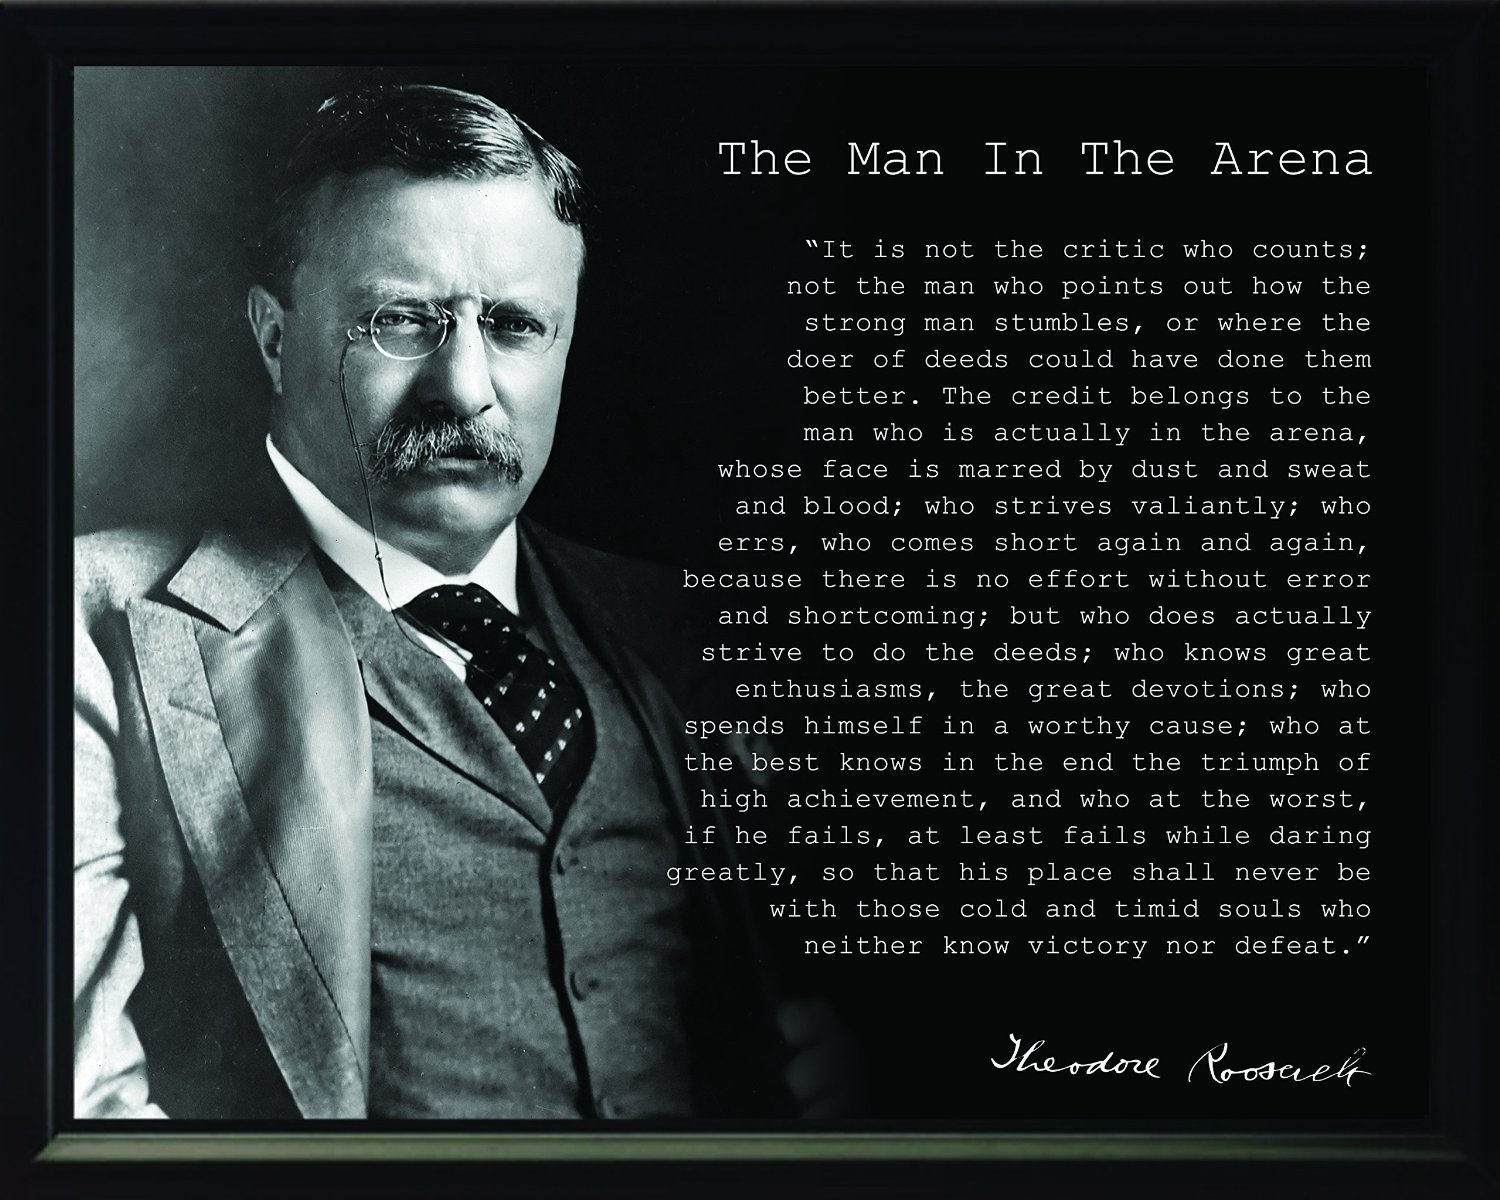 President Theodore Teddy Roosevelt the Man in the Arena Quote 8x10 Framed Picture